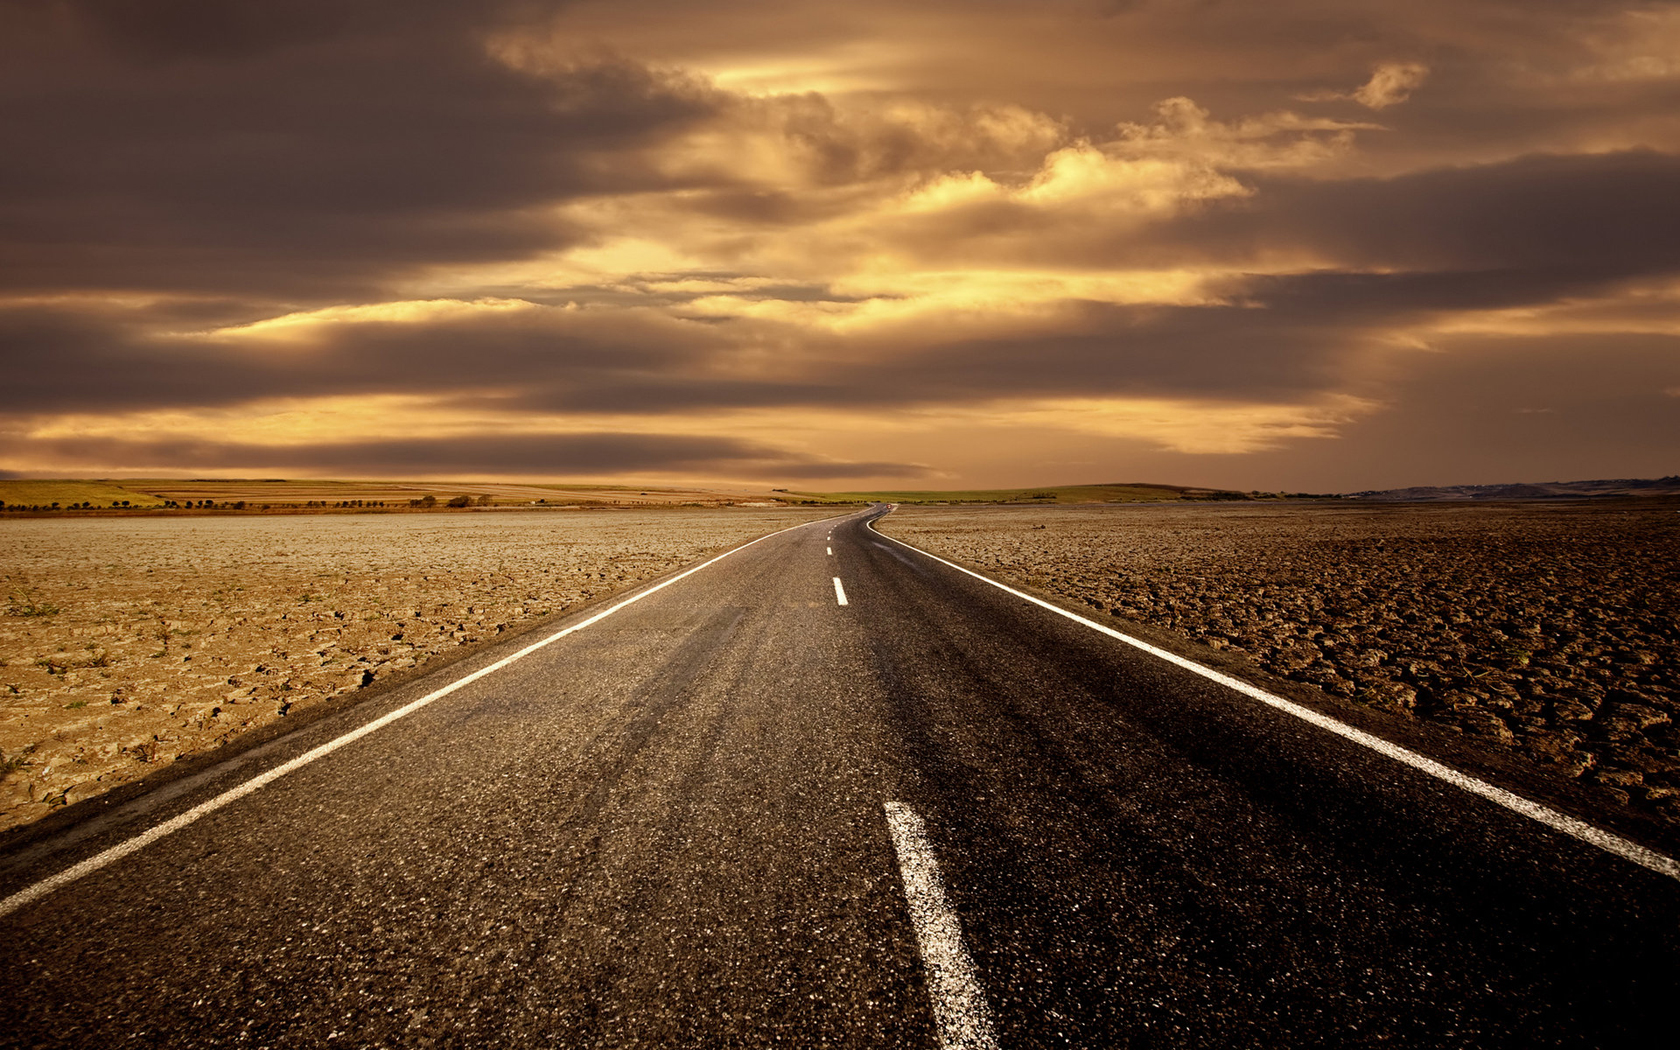 road in desert hd place natural wallpapers